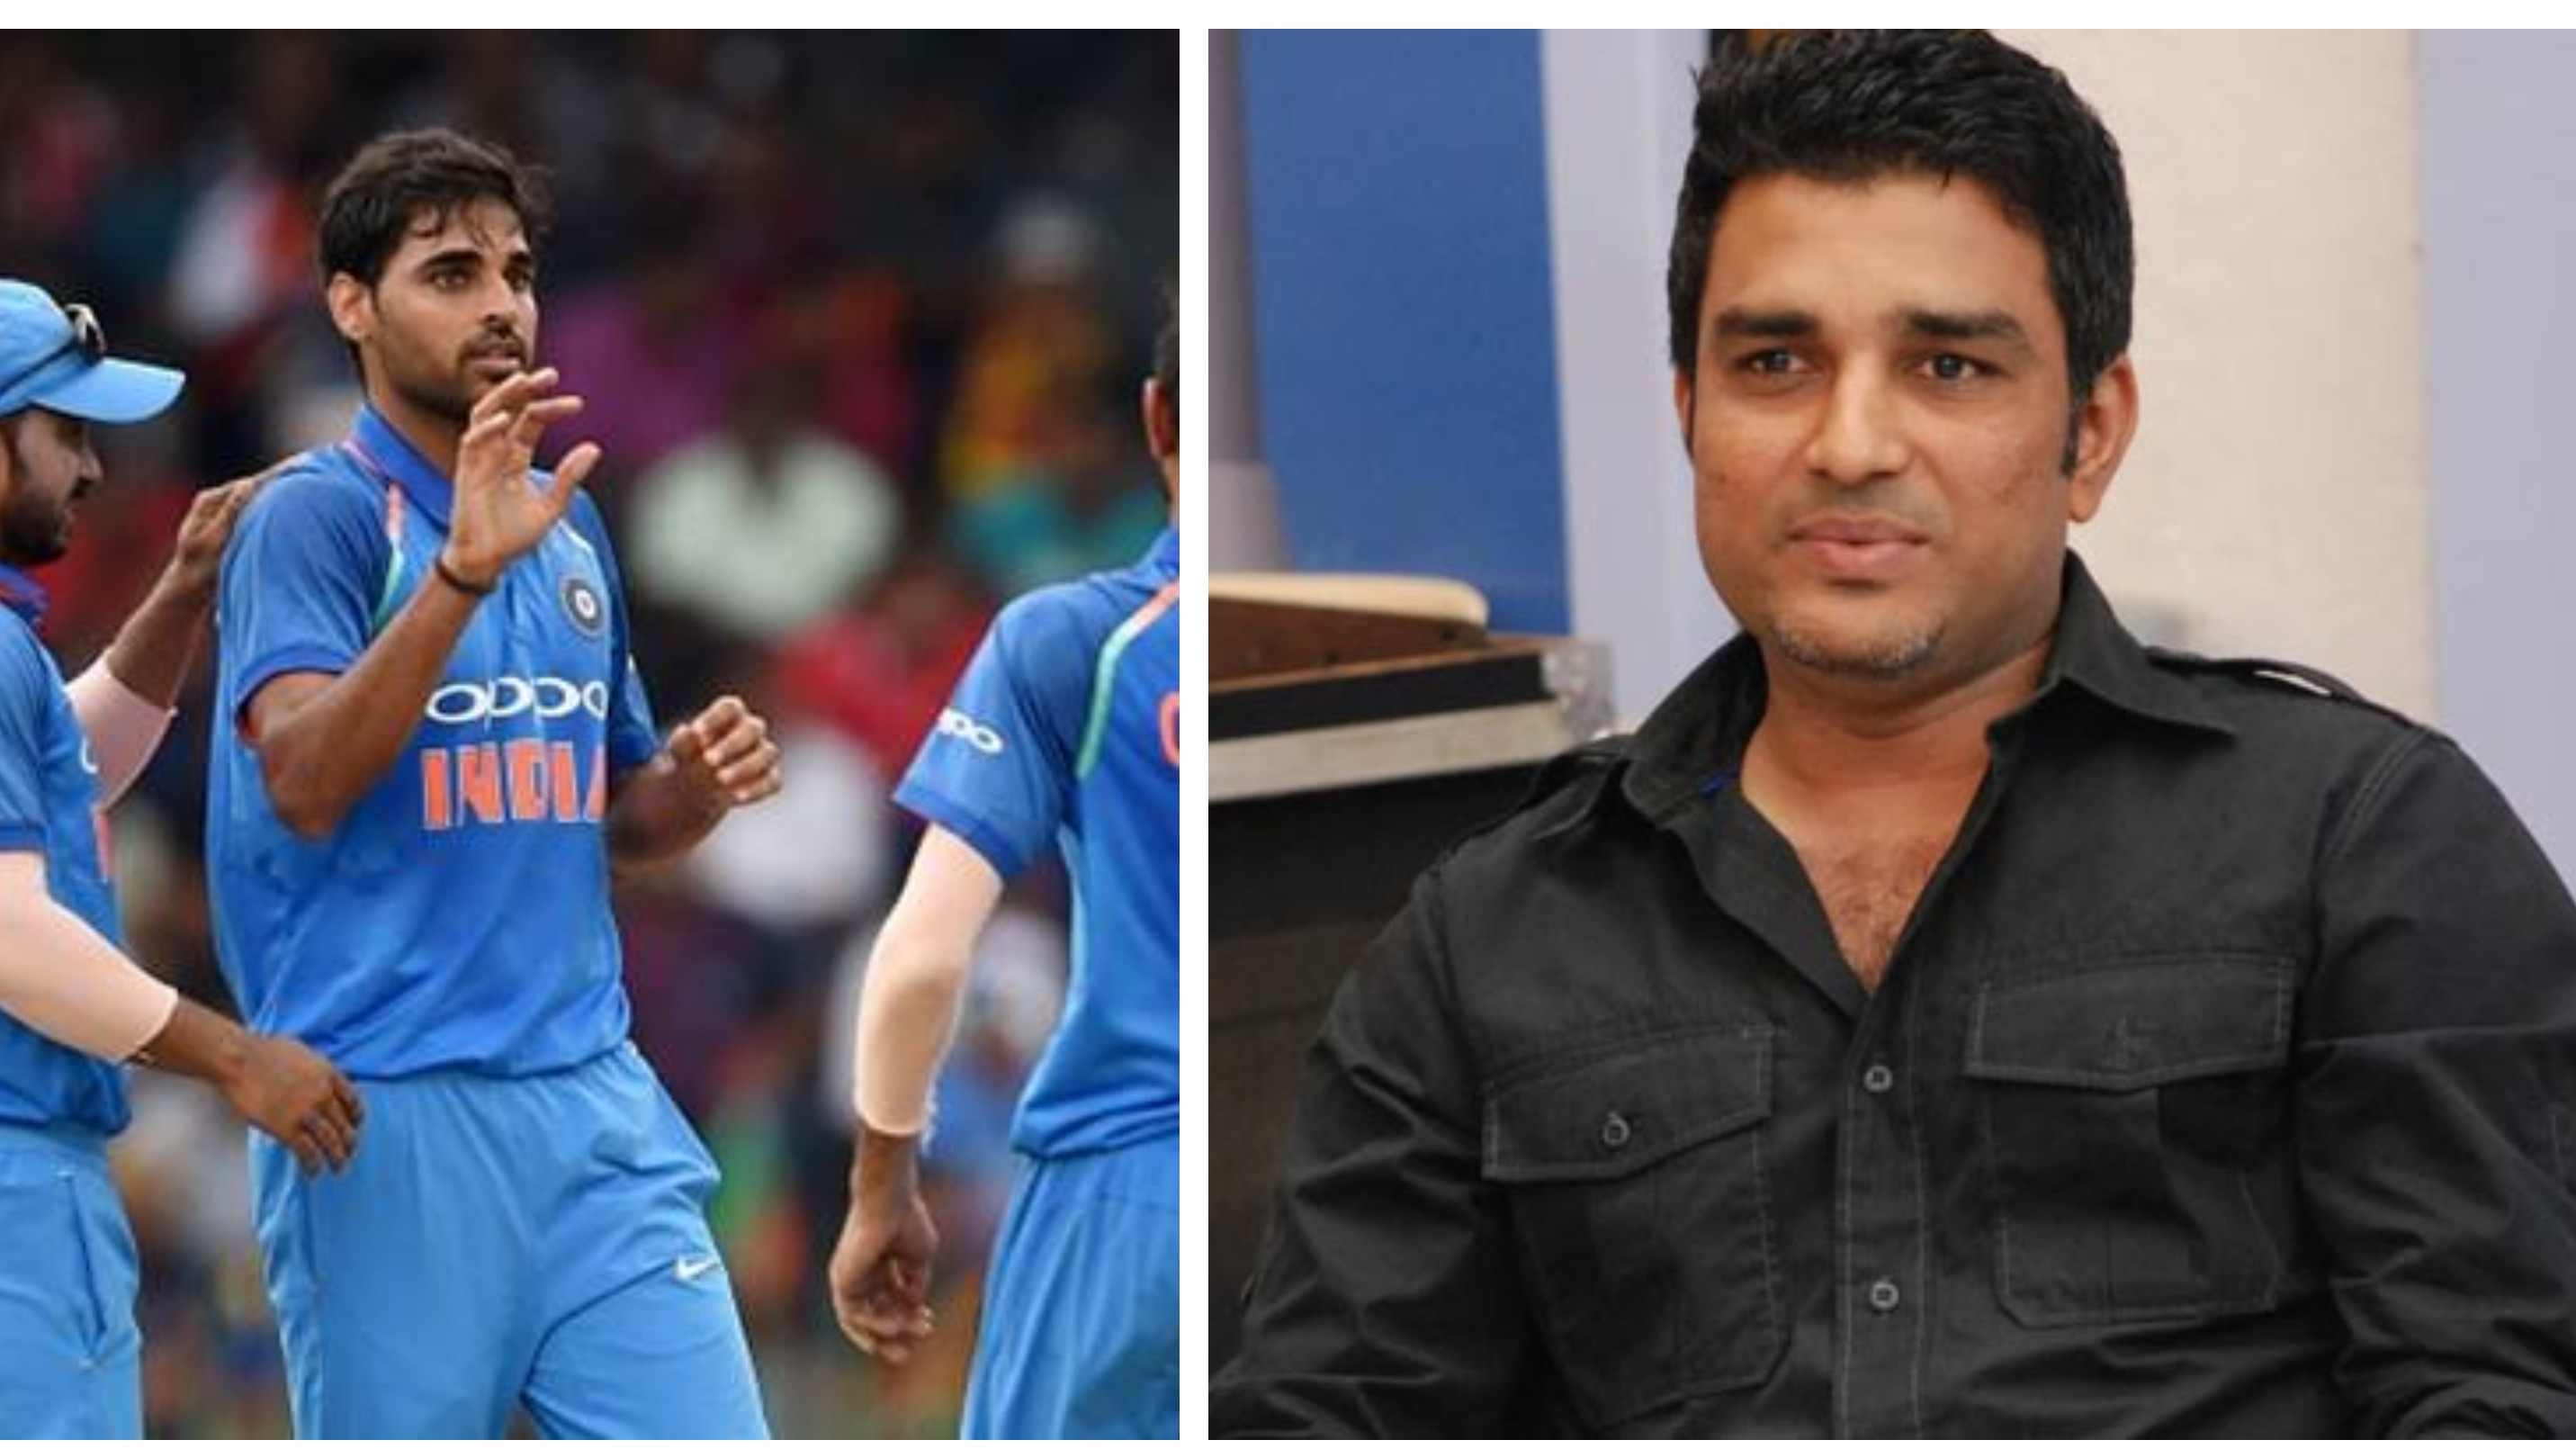 IND v WI 2018: Sanjay Manjrekar raises questions over Bhuvneshwar Kumar's recent ODI performances